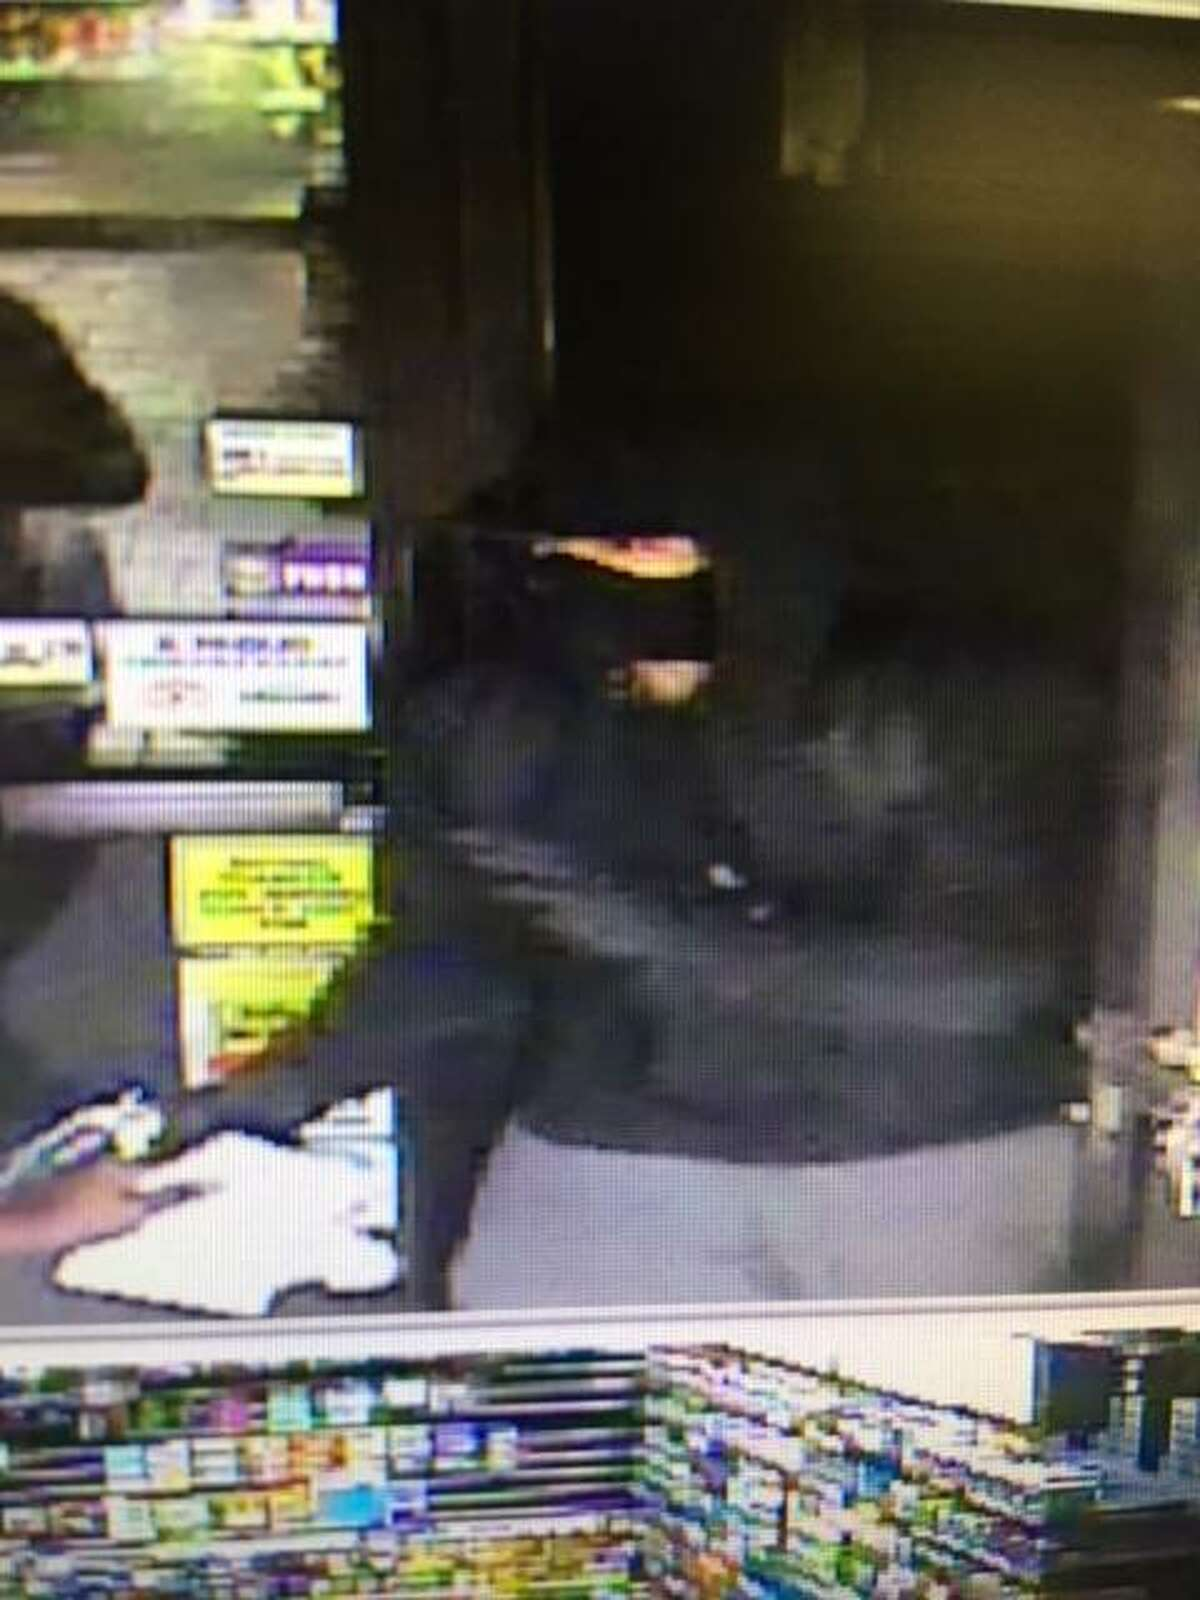 Police are seeking information for the public after a gas station was robbed Thursday in Torrington.